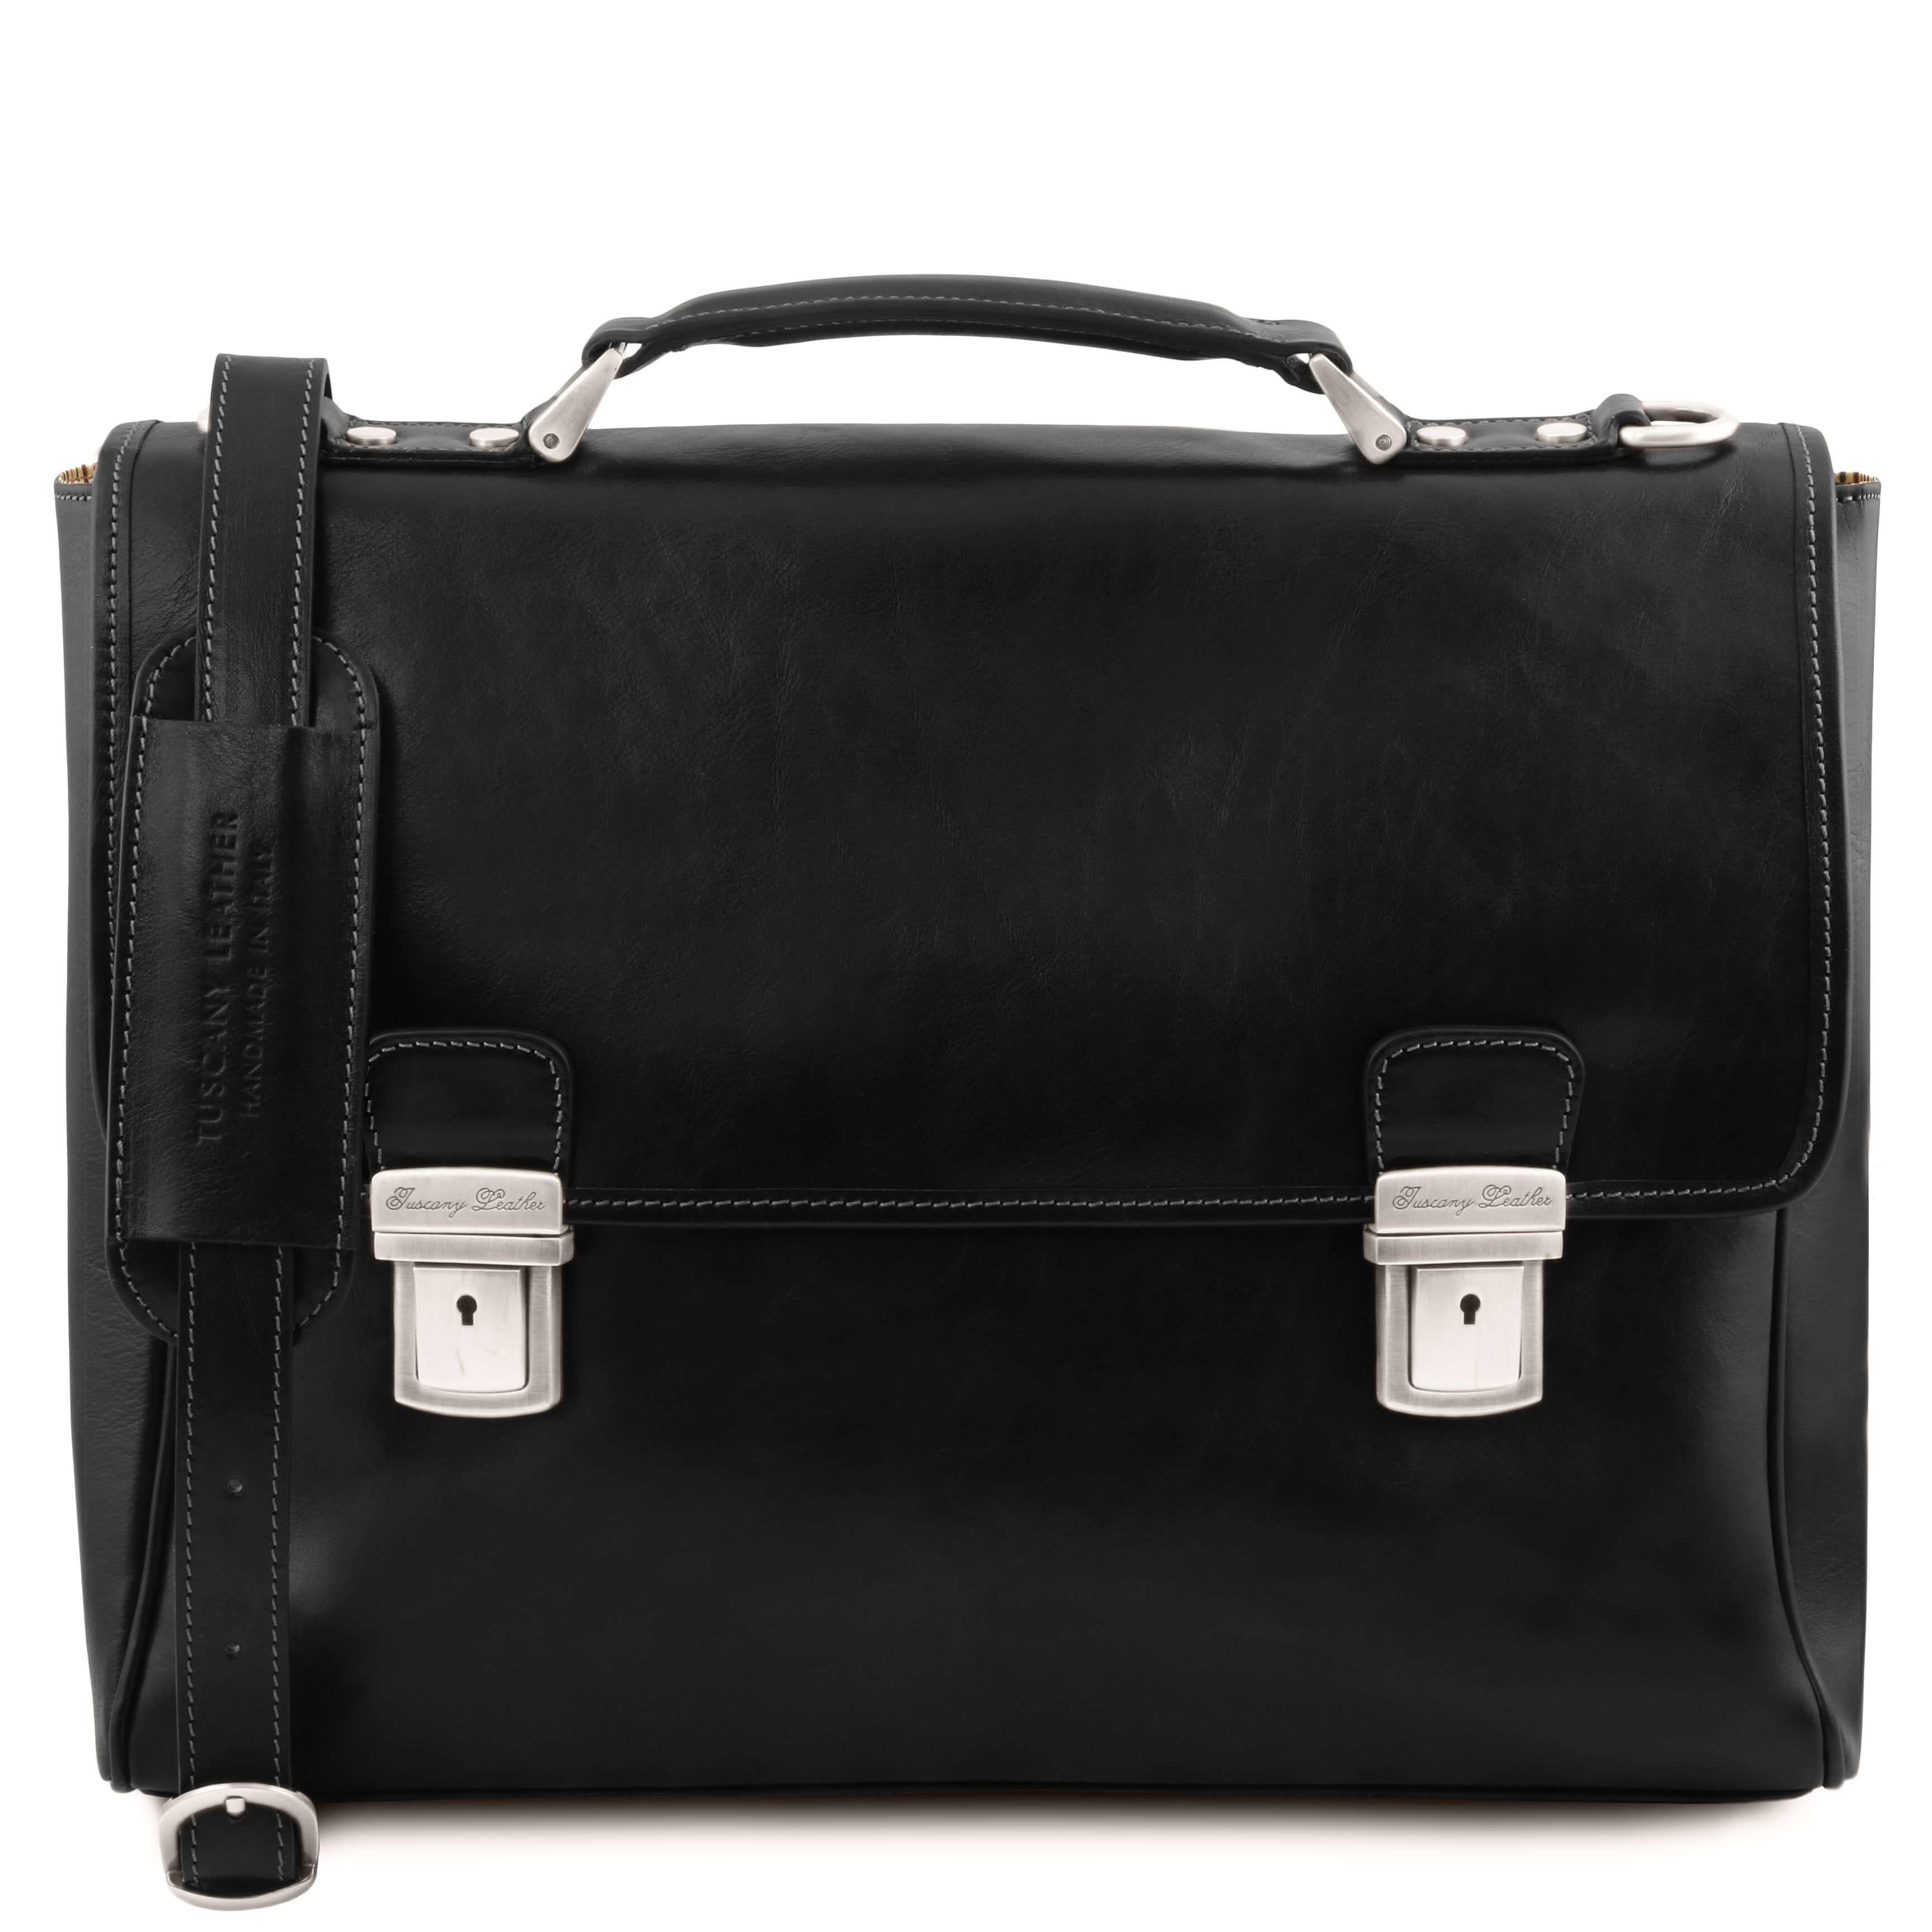 Trieste Leather Laptop Case With 2 Compartments TL141662 By Tuscany Leather